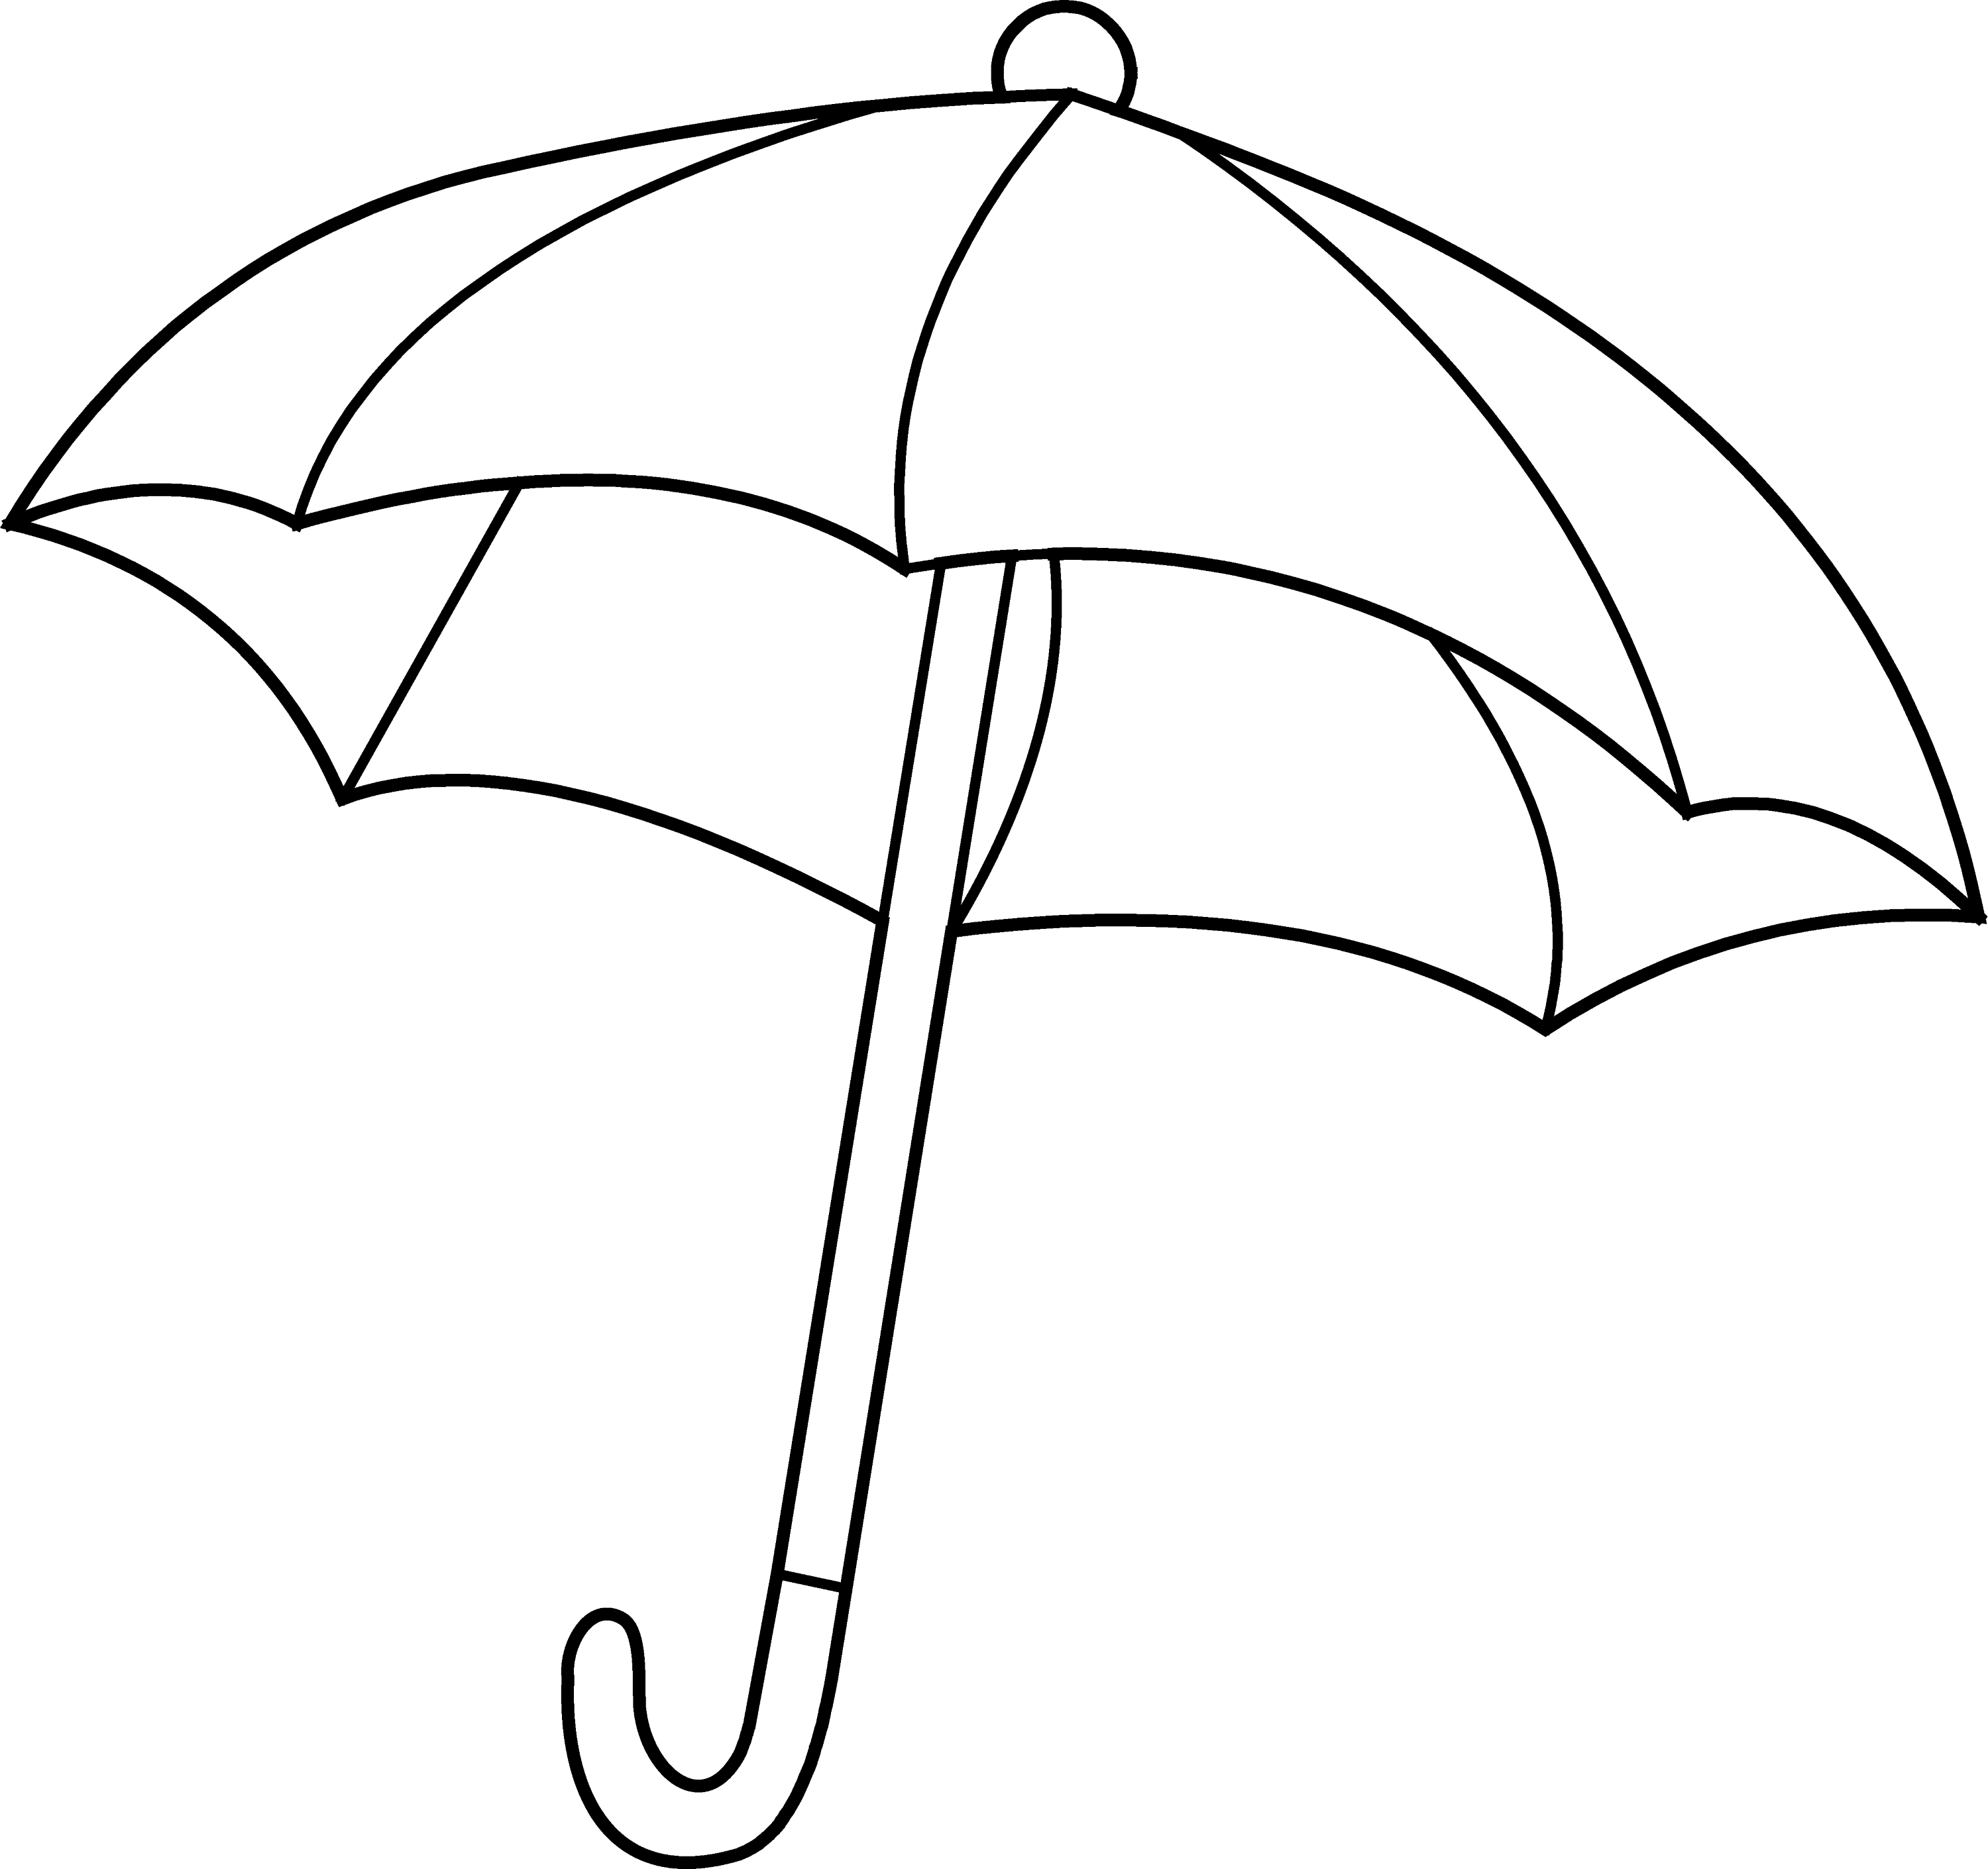 coloring image of umbrella umbrella coloring pages for childrens printable for free of image coloring umbrella